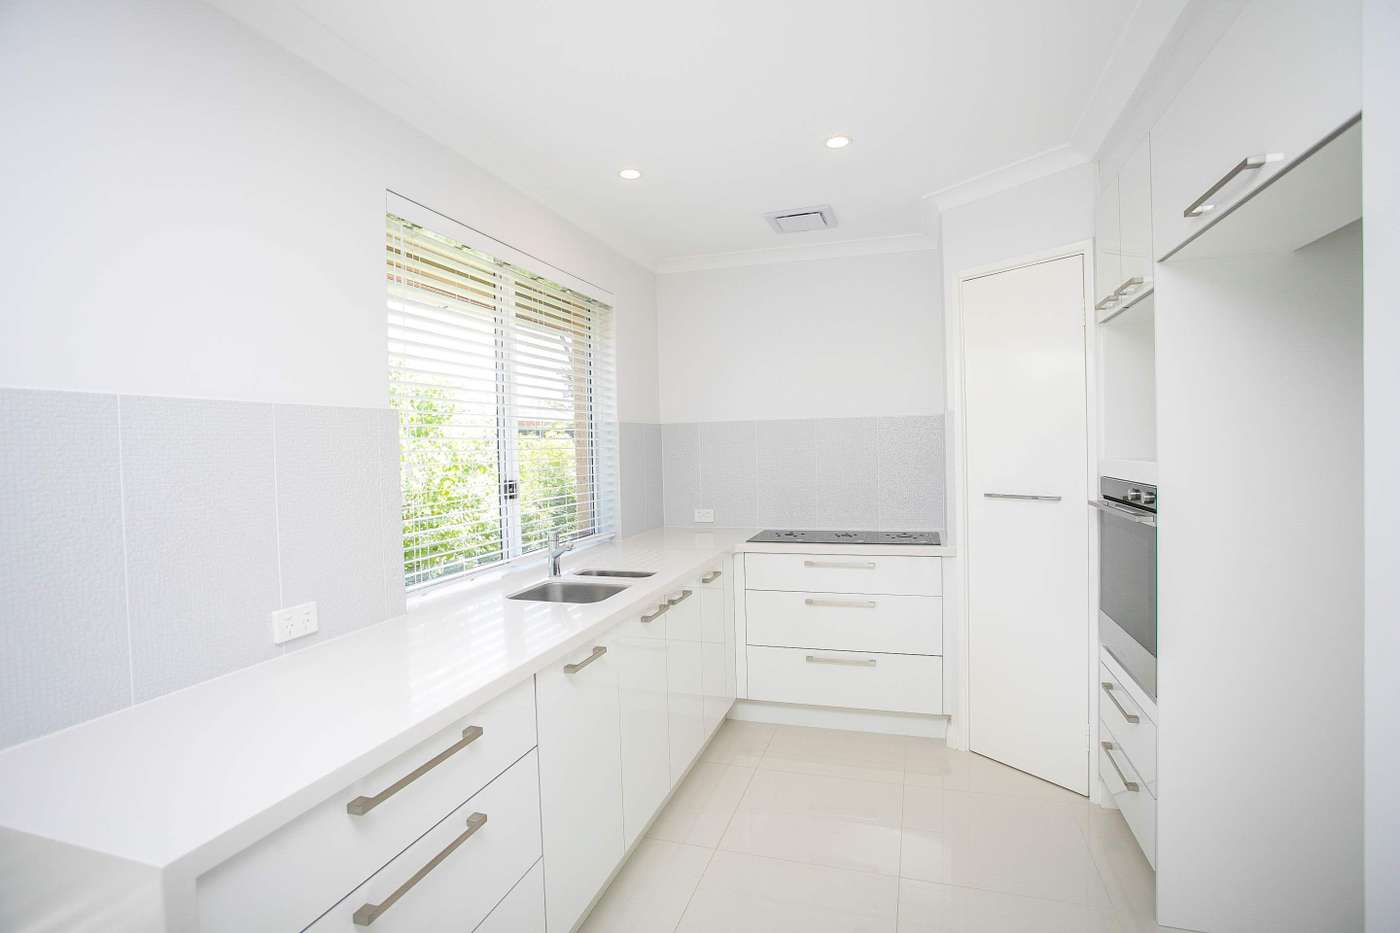 Main view of Homely house listing, 5/4-6 Norn Close, South Guildford, WA 6055